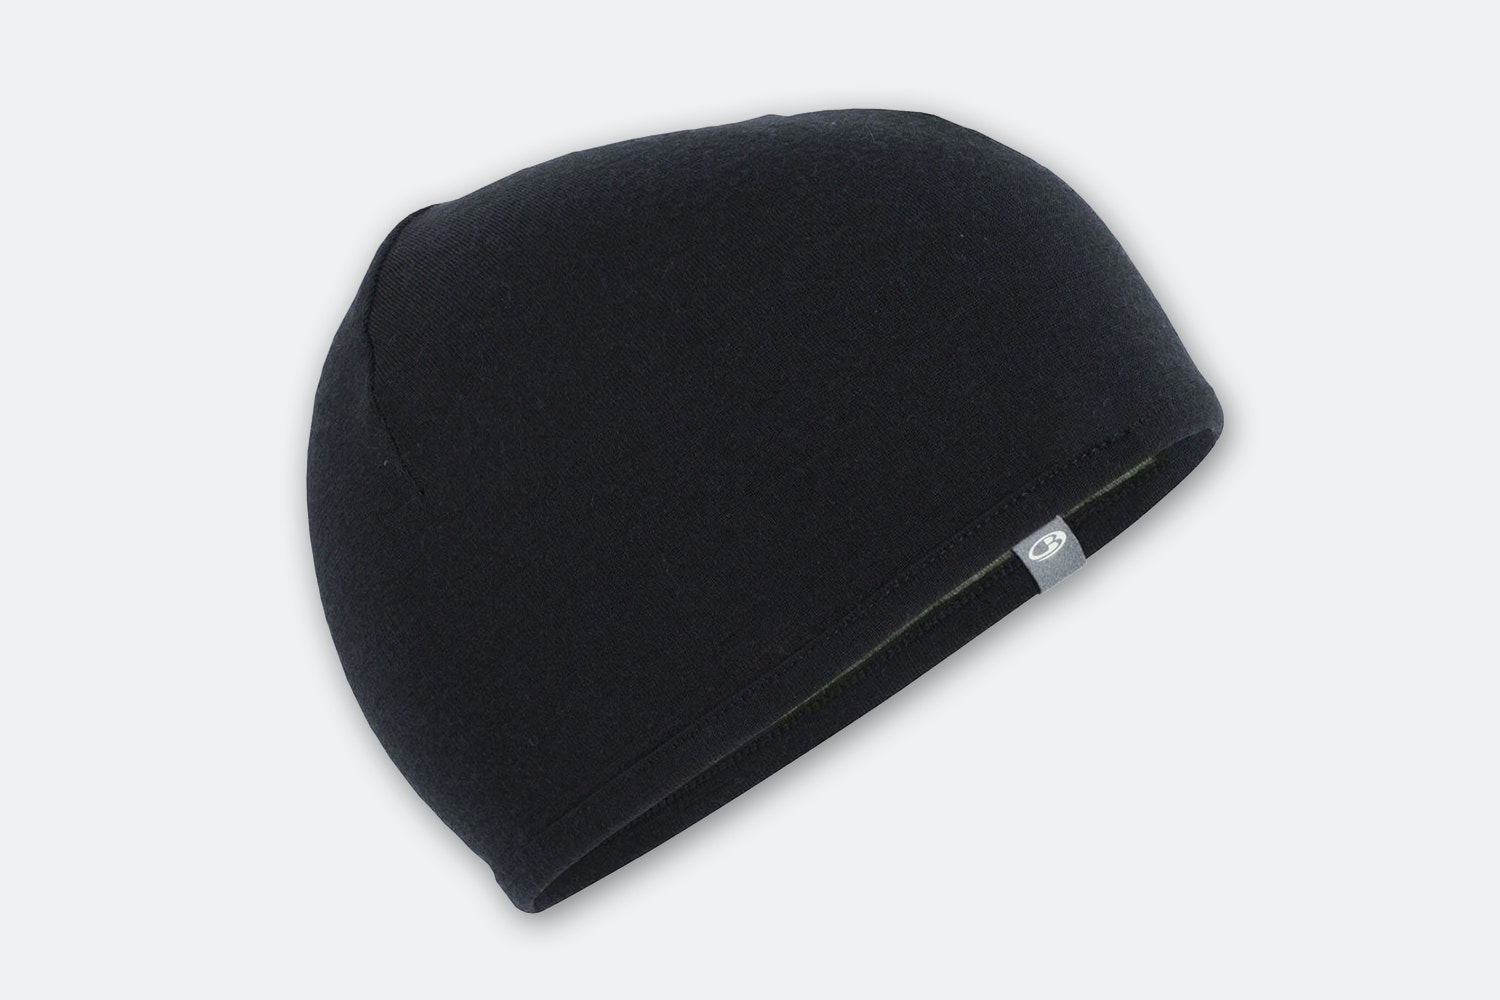 Pocket Hat - Black/Cargo (-$5)